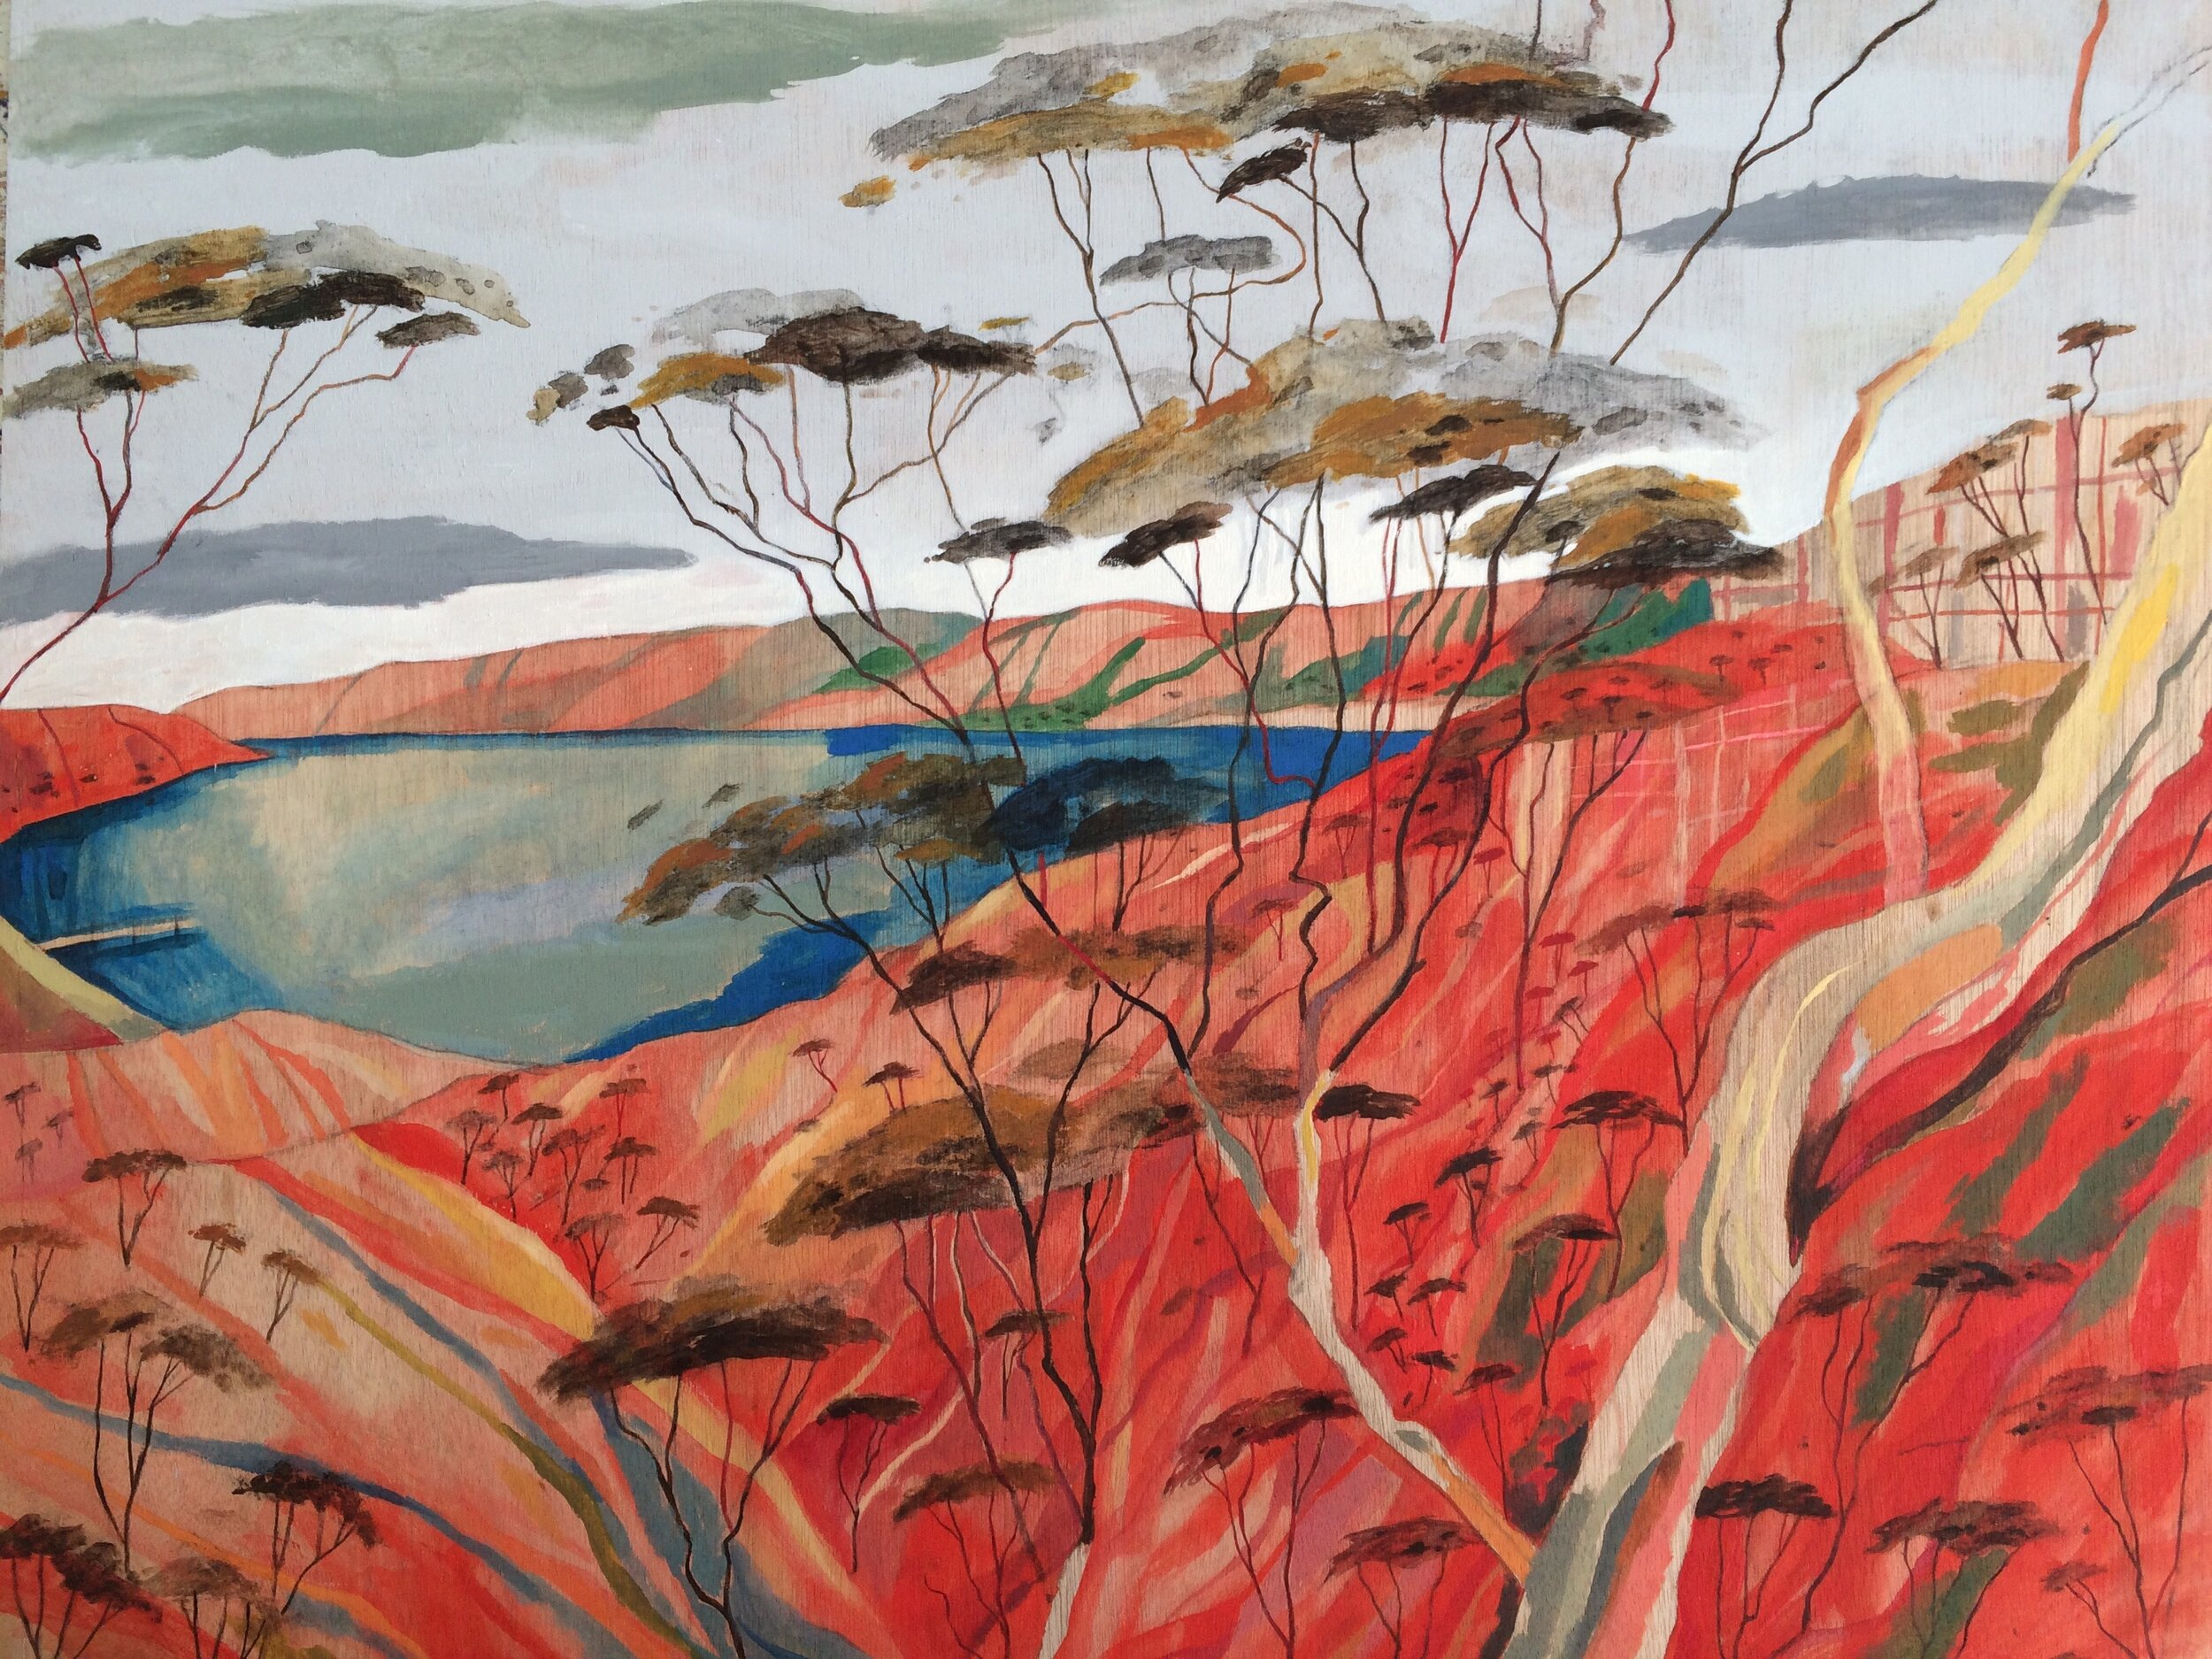 BWaters_Red Valley Pittwater_63x51cm_Acryliconboard$1000.jpg